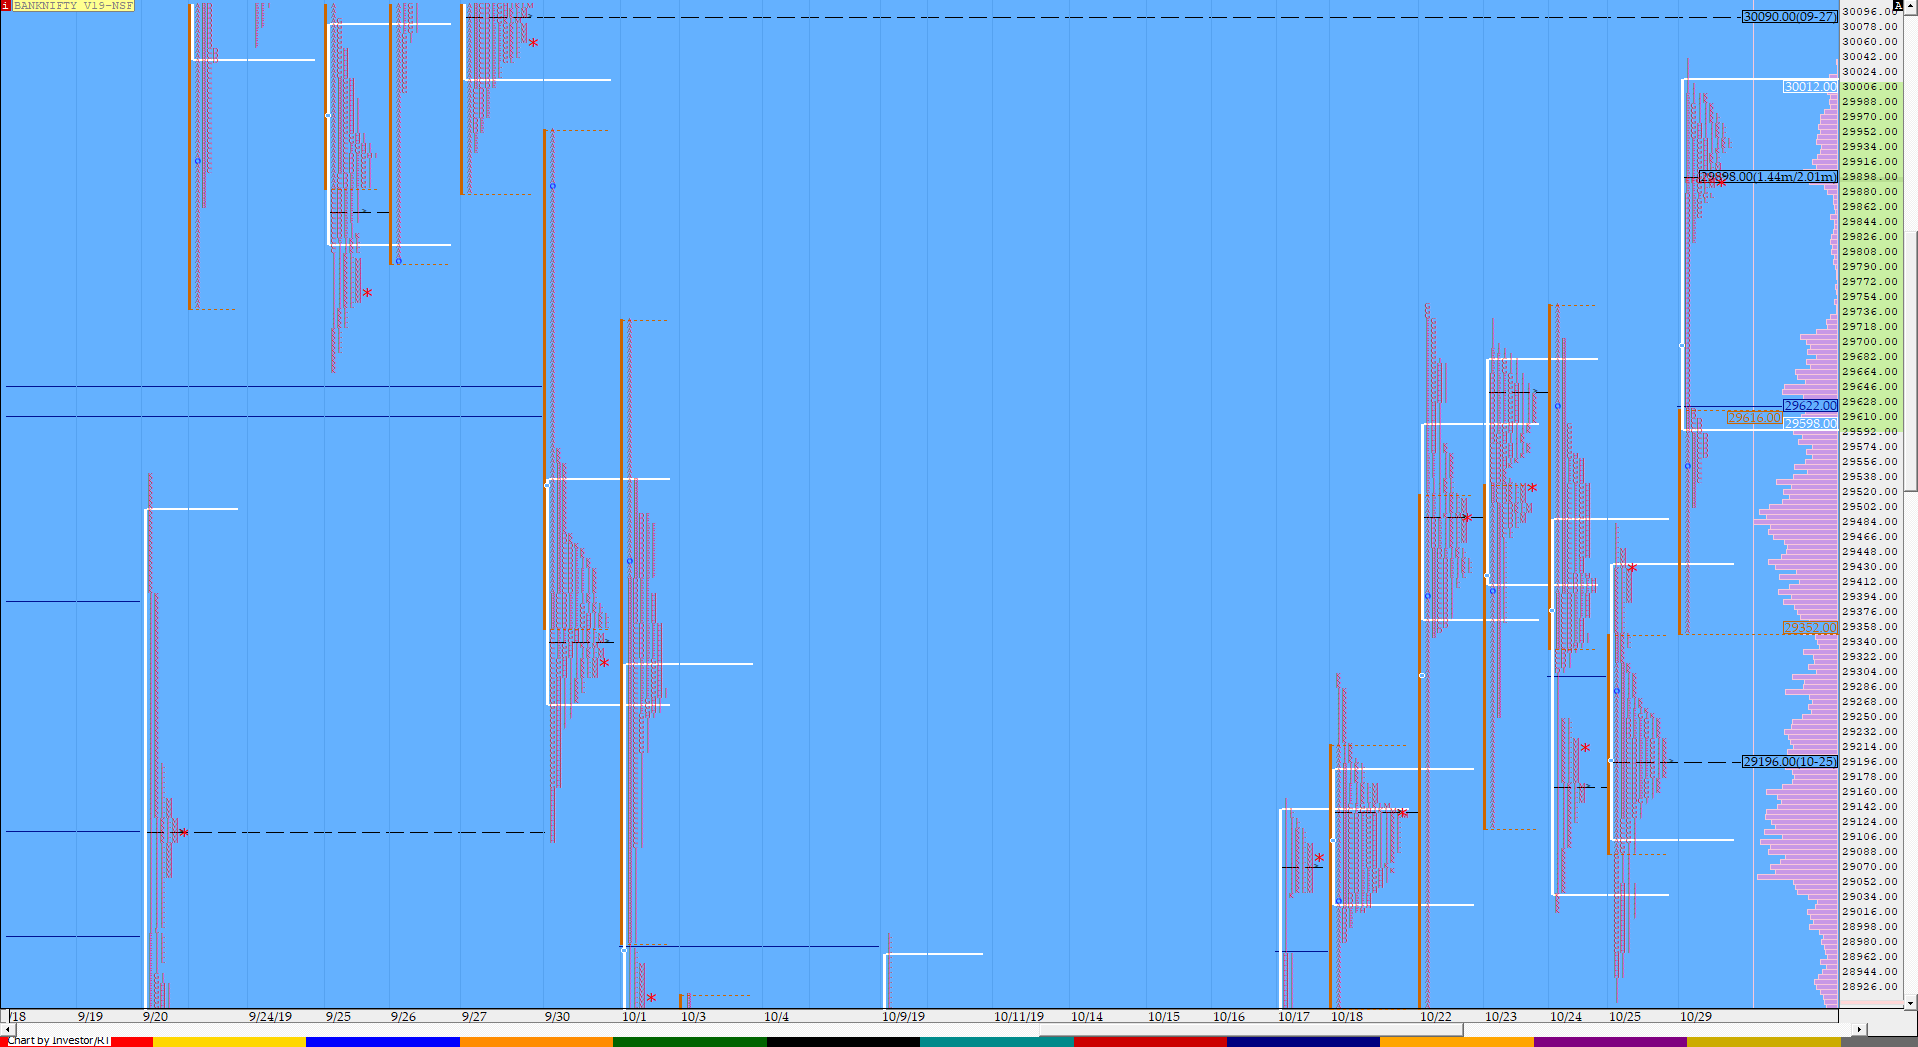 Market Profile Analysis dated 29th October 3